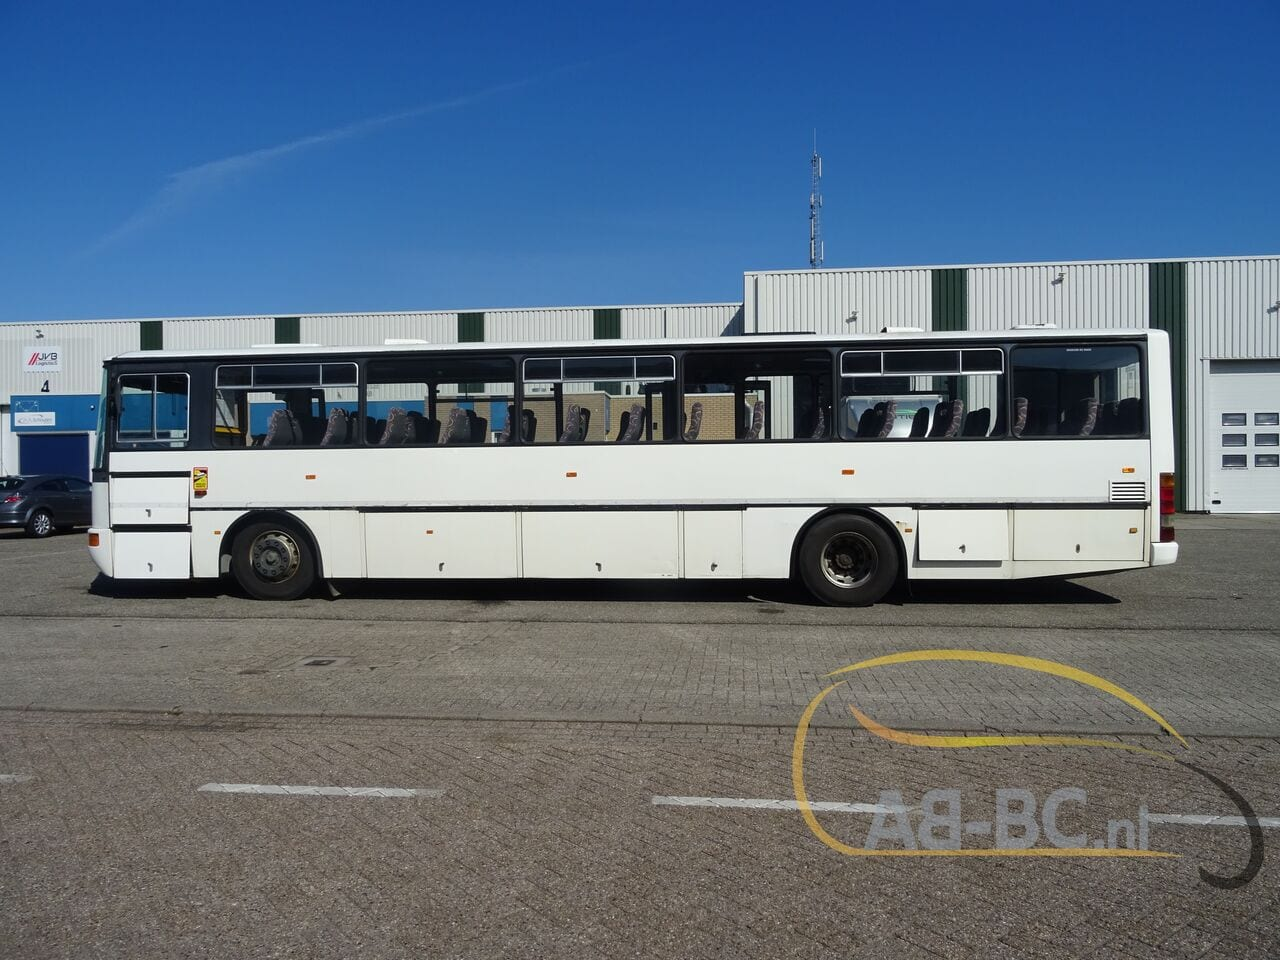 interurban-busIVECO-Irisbus-Recreo-59-Seats---1619430679343315491_big_b25bbe77b18da071436ef69d4a39c226--21042612454255740900